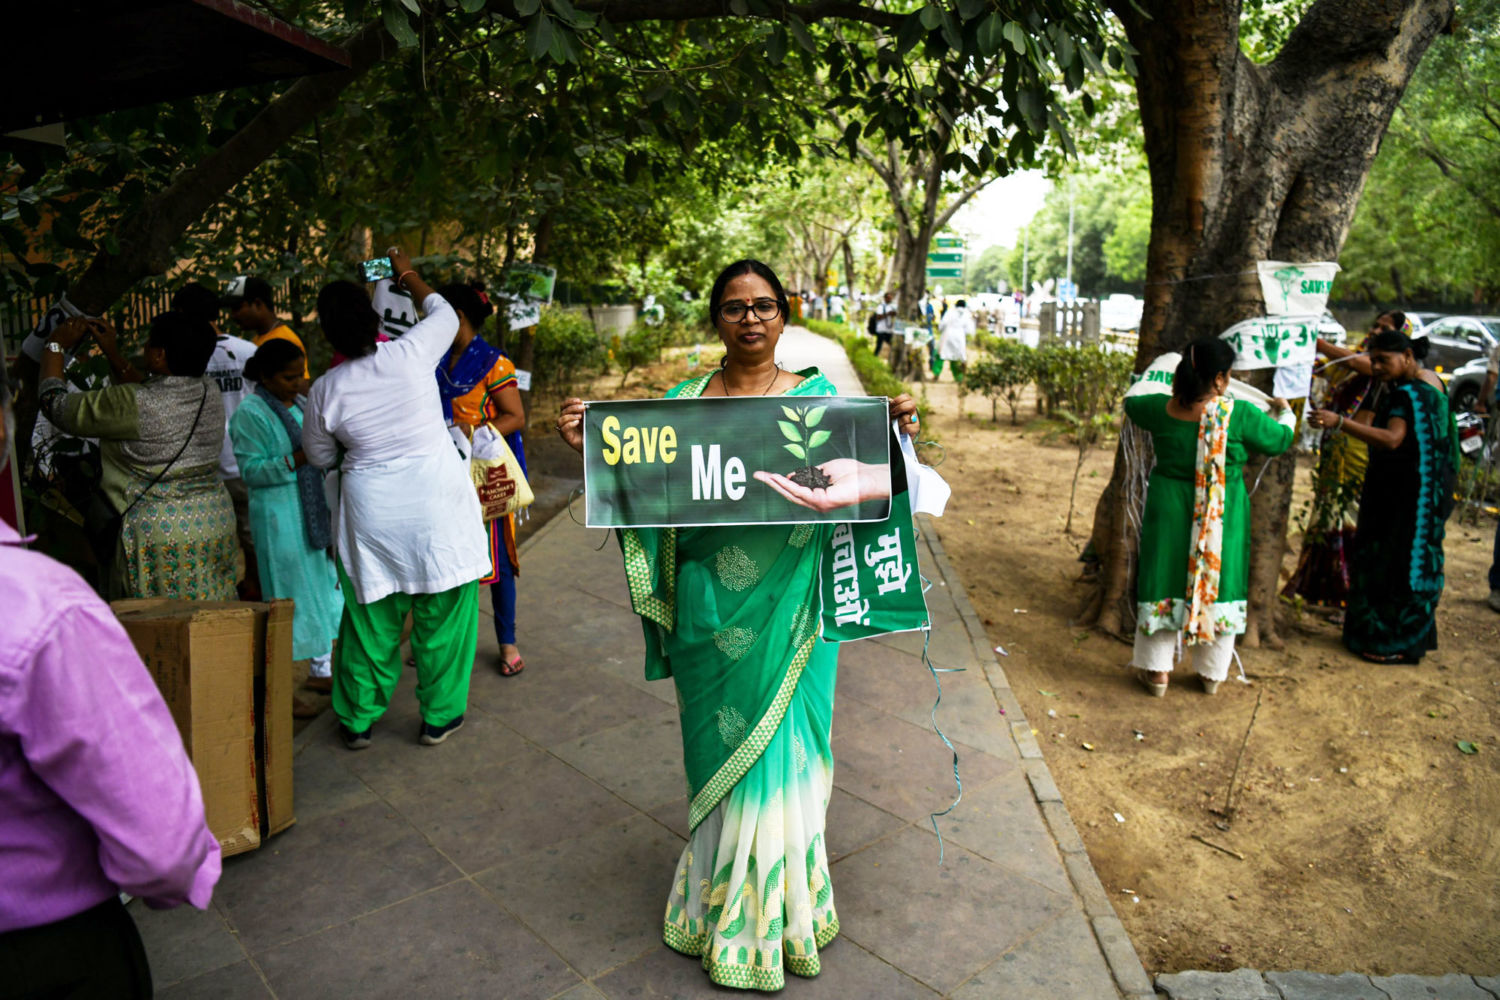 In India's Fast-Growing Cities, a Grassroots Effort to Save